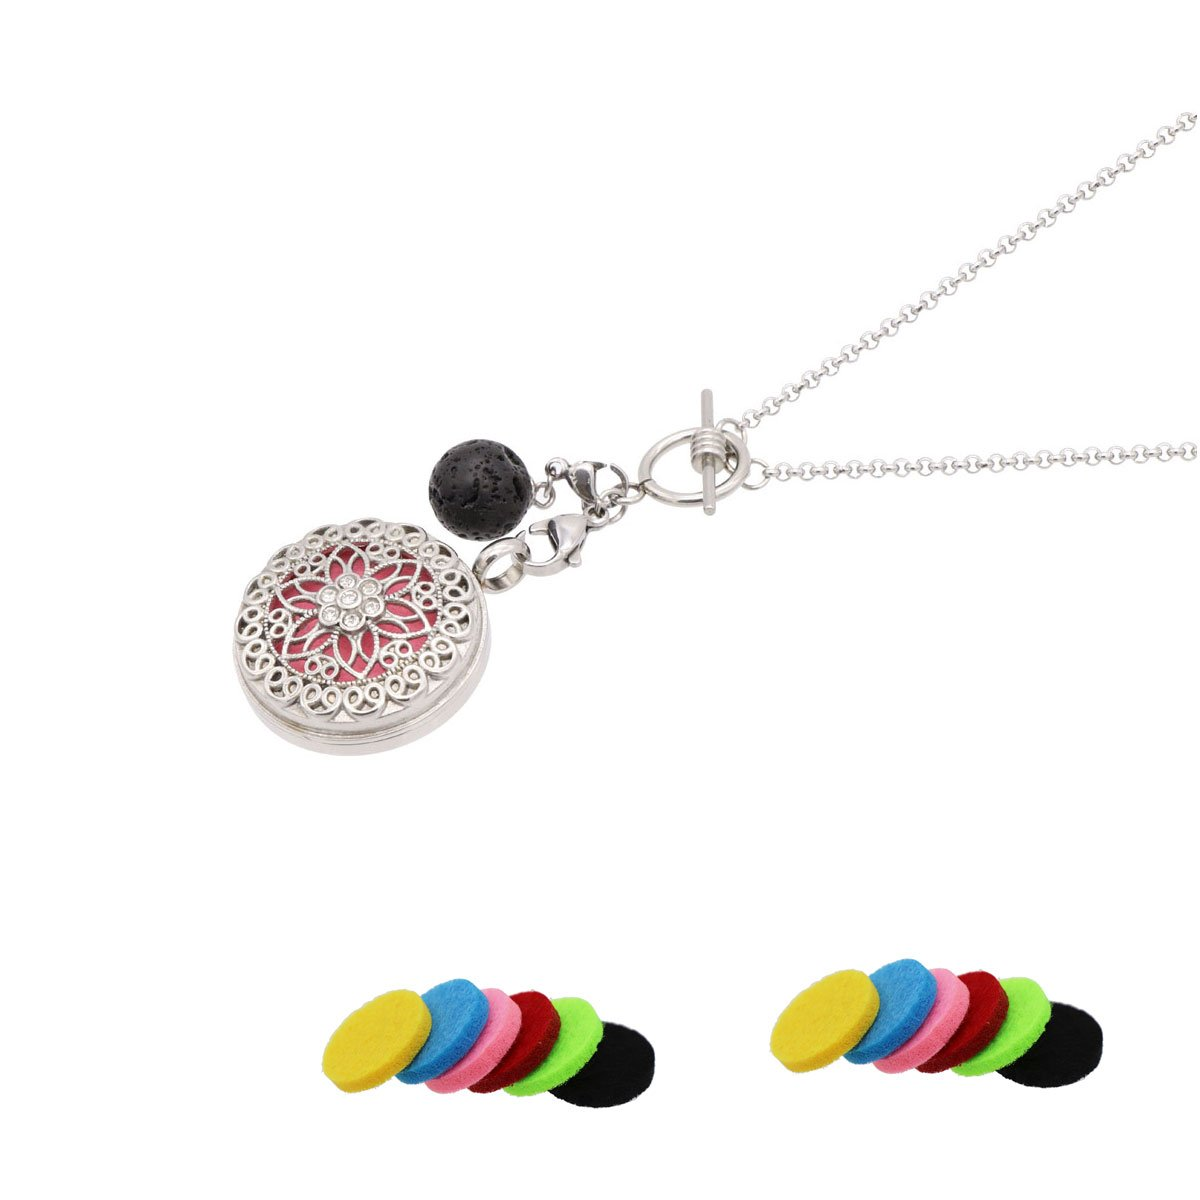 Aromatherapy Essential Oil Diffuser Necklace with Lava Ball Pendant Jewelry Gift for Her-Silver by NewStar (Image #1)